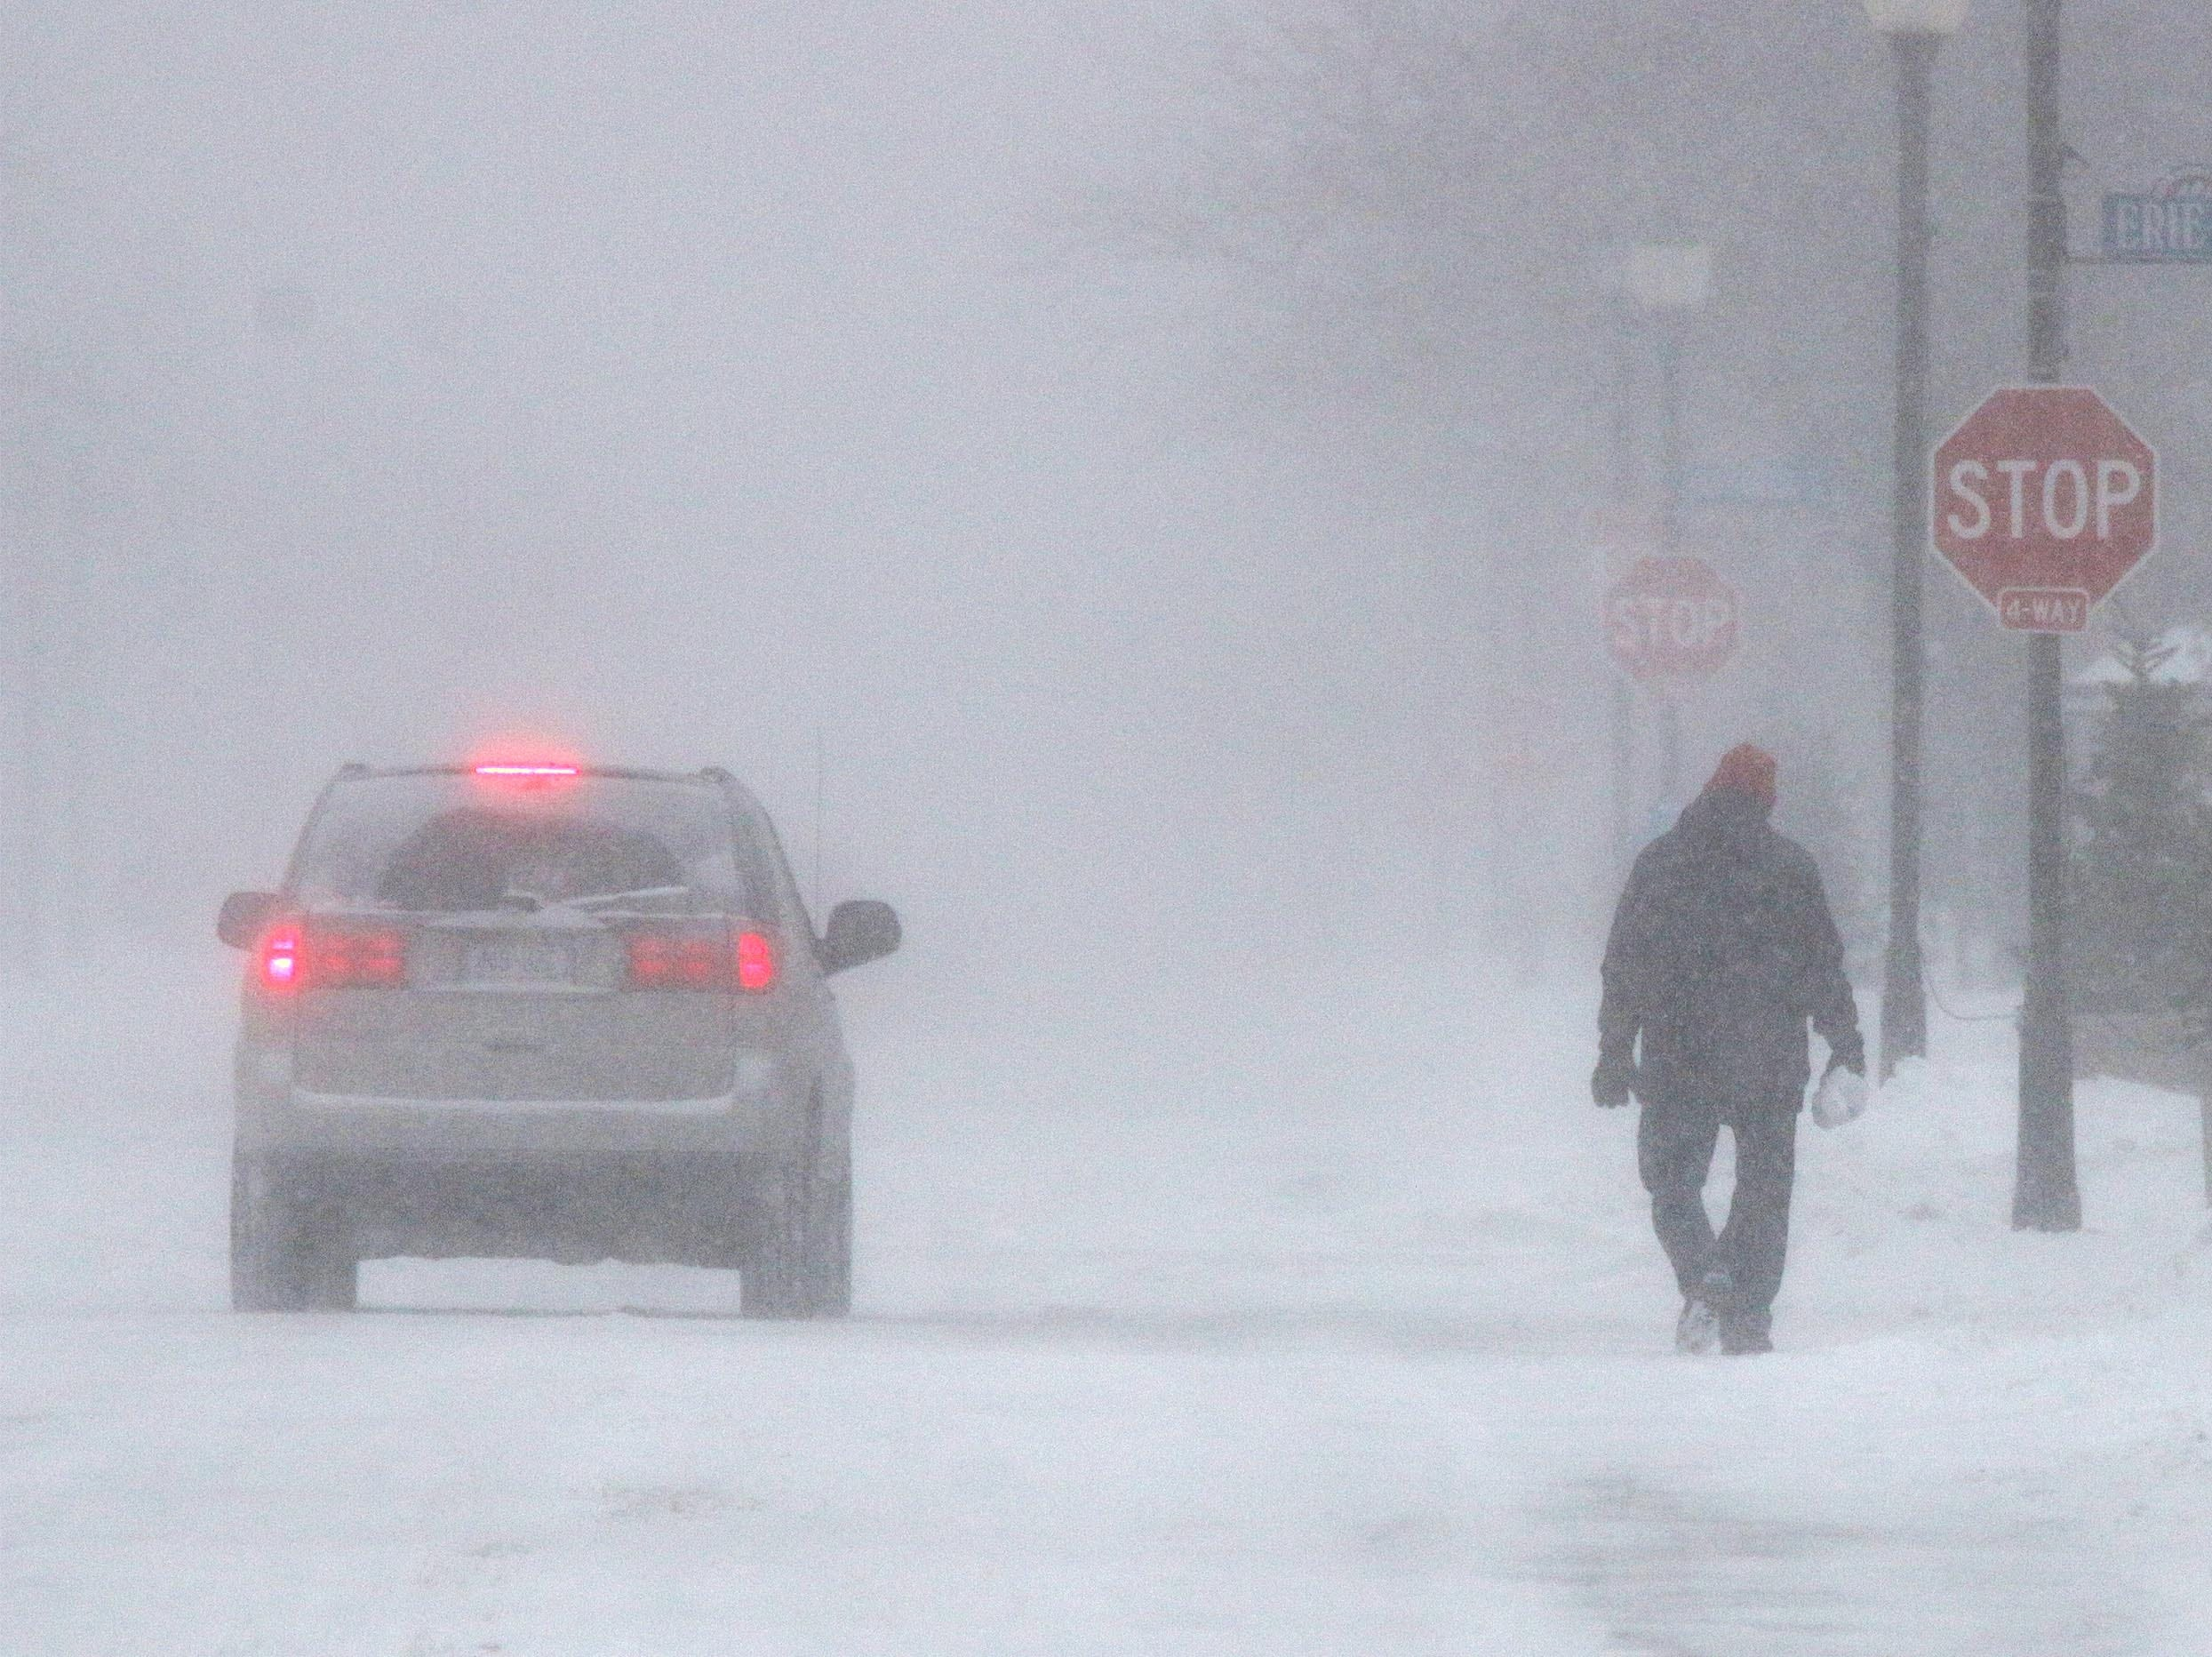 A man walks on the road in near whiteout conditions, on Erie and North Eighth Street, Monday, Jan. 28, 2019, in Sheboygan, Wis.